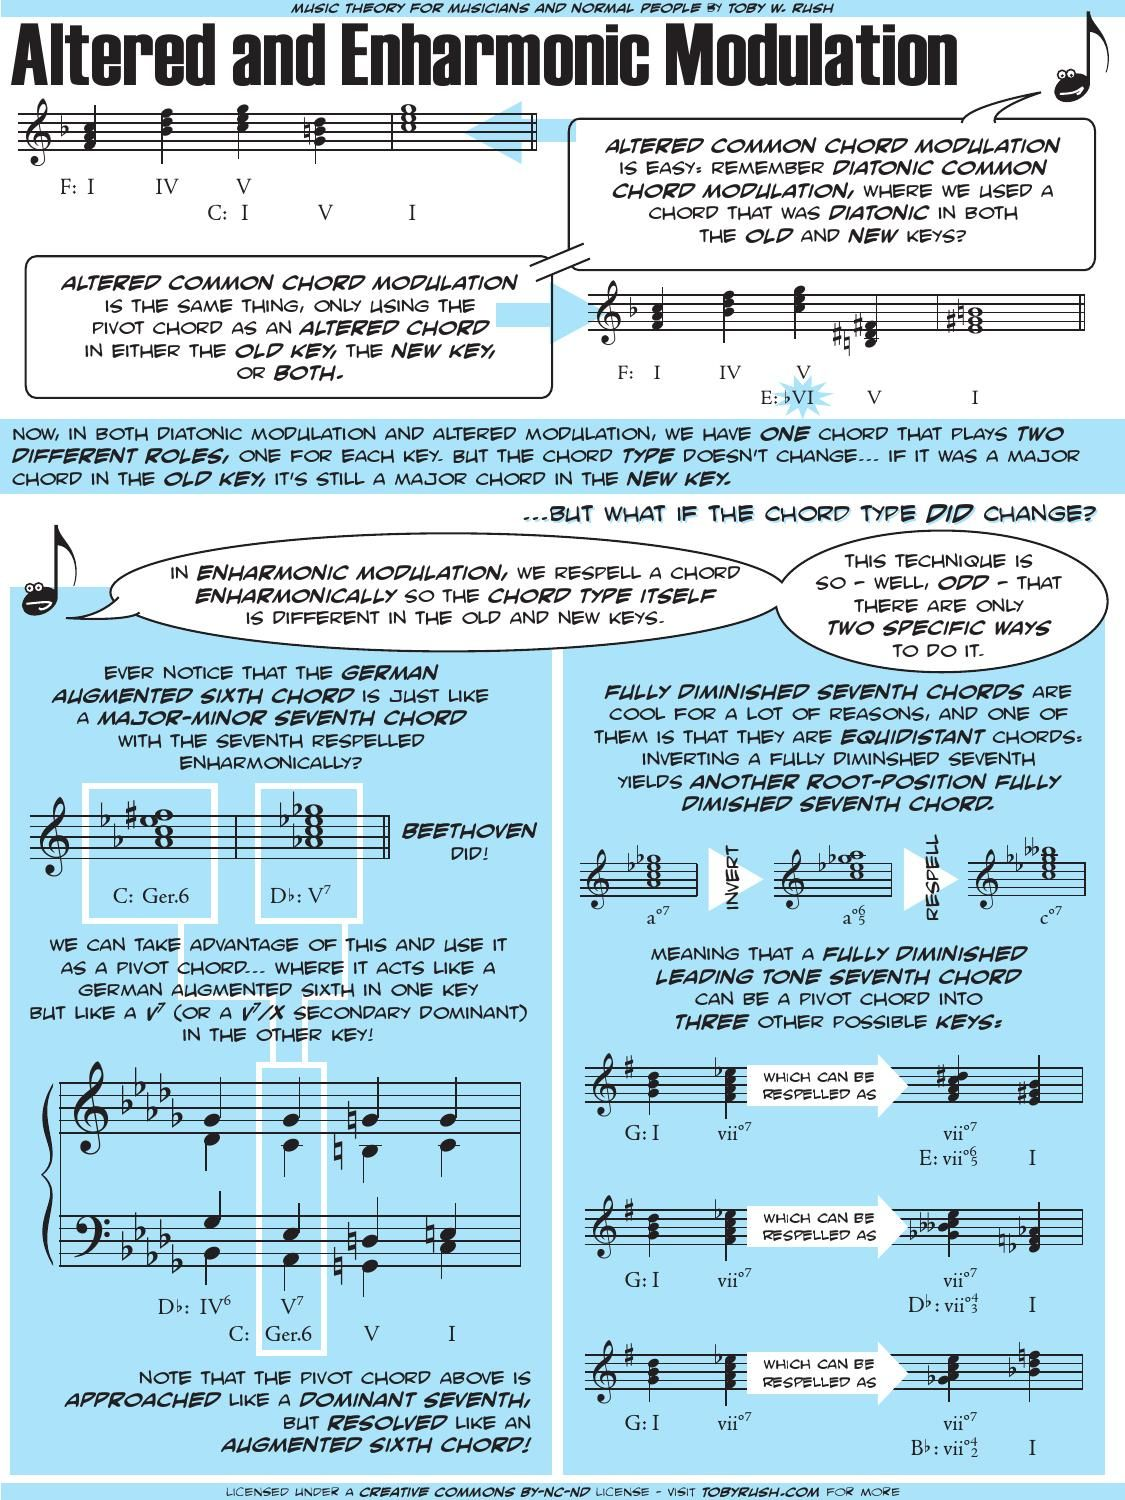 Free pdf download of how to motivate piano students with 5 notes free pdf download of how to motivate piano students with 5 notes the blues pentascale in all keys by jerald simon music motivation pinterest pianos hexwebz Choice Image